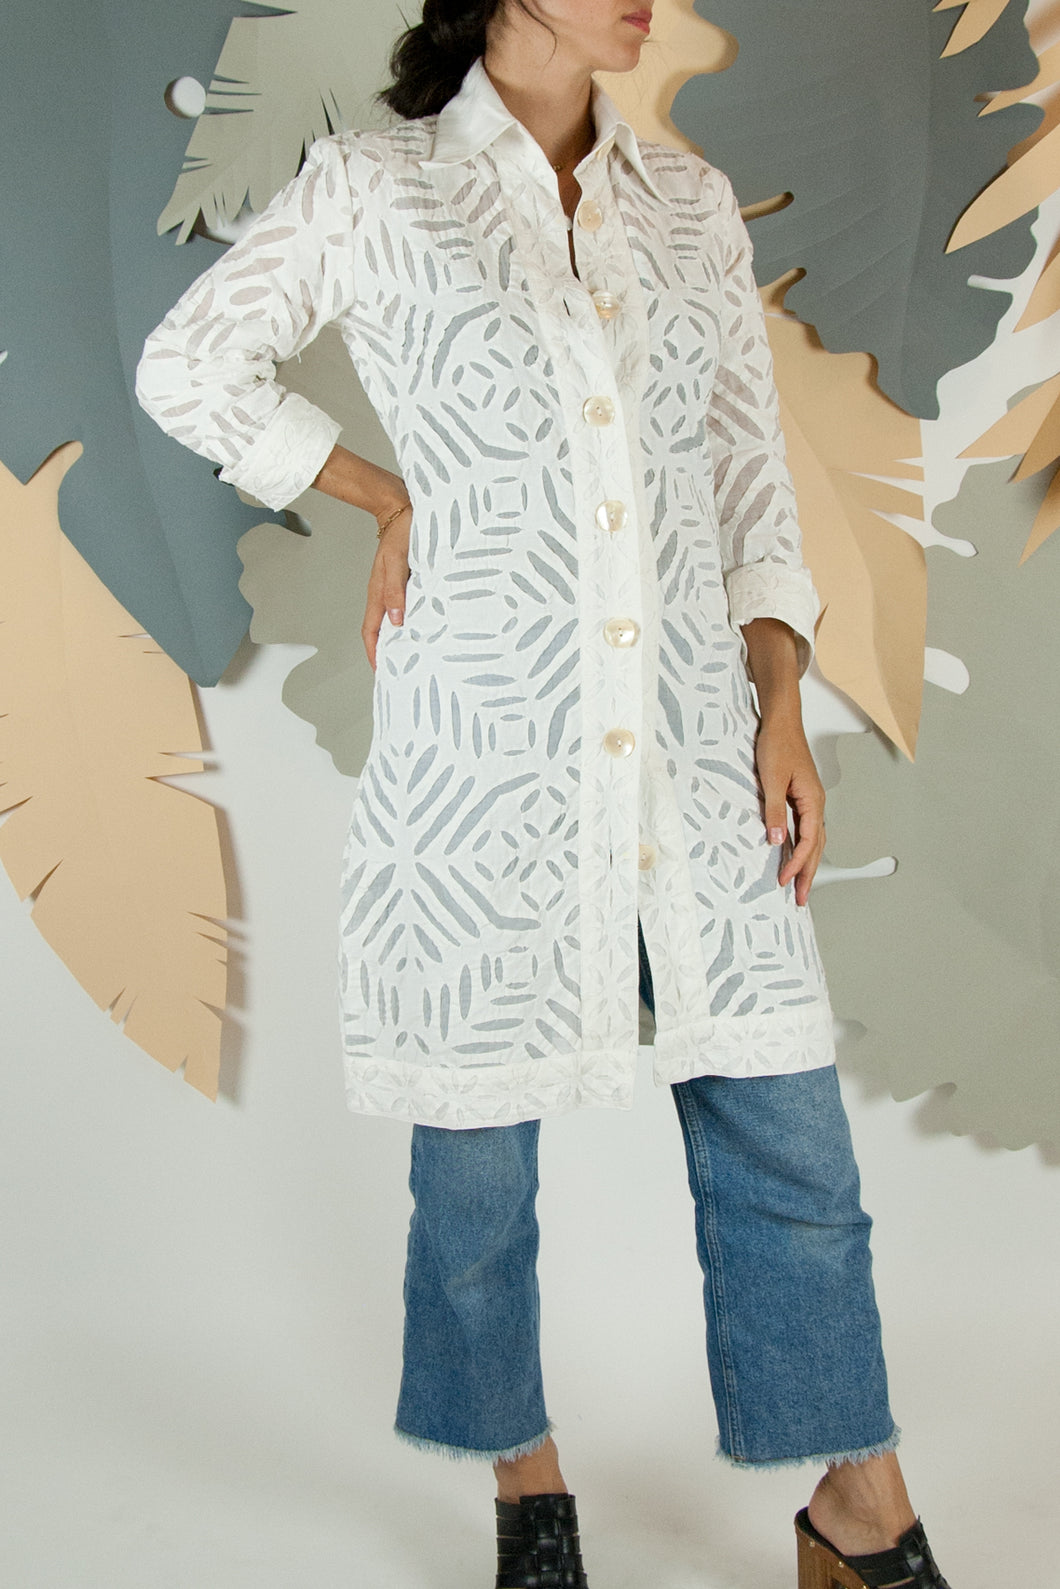 Appliqué Cloud Robe - XS #07